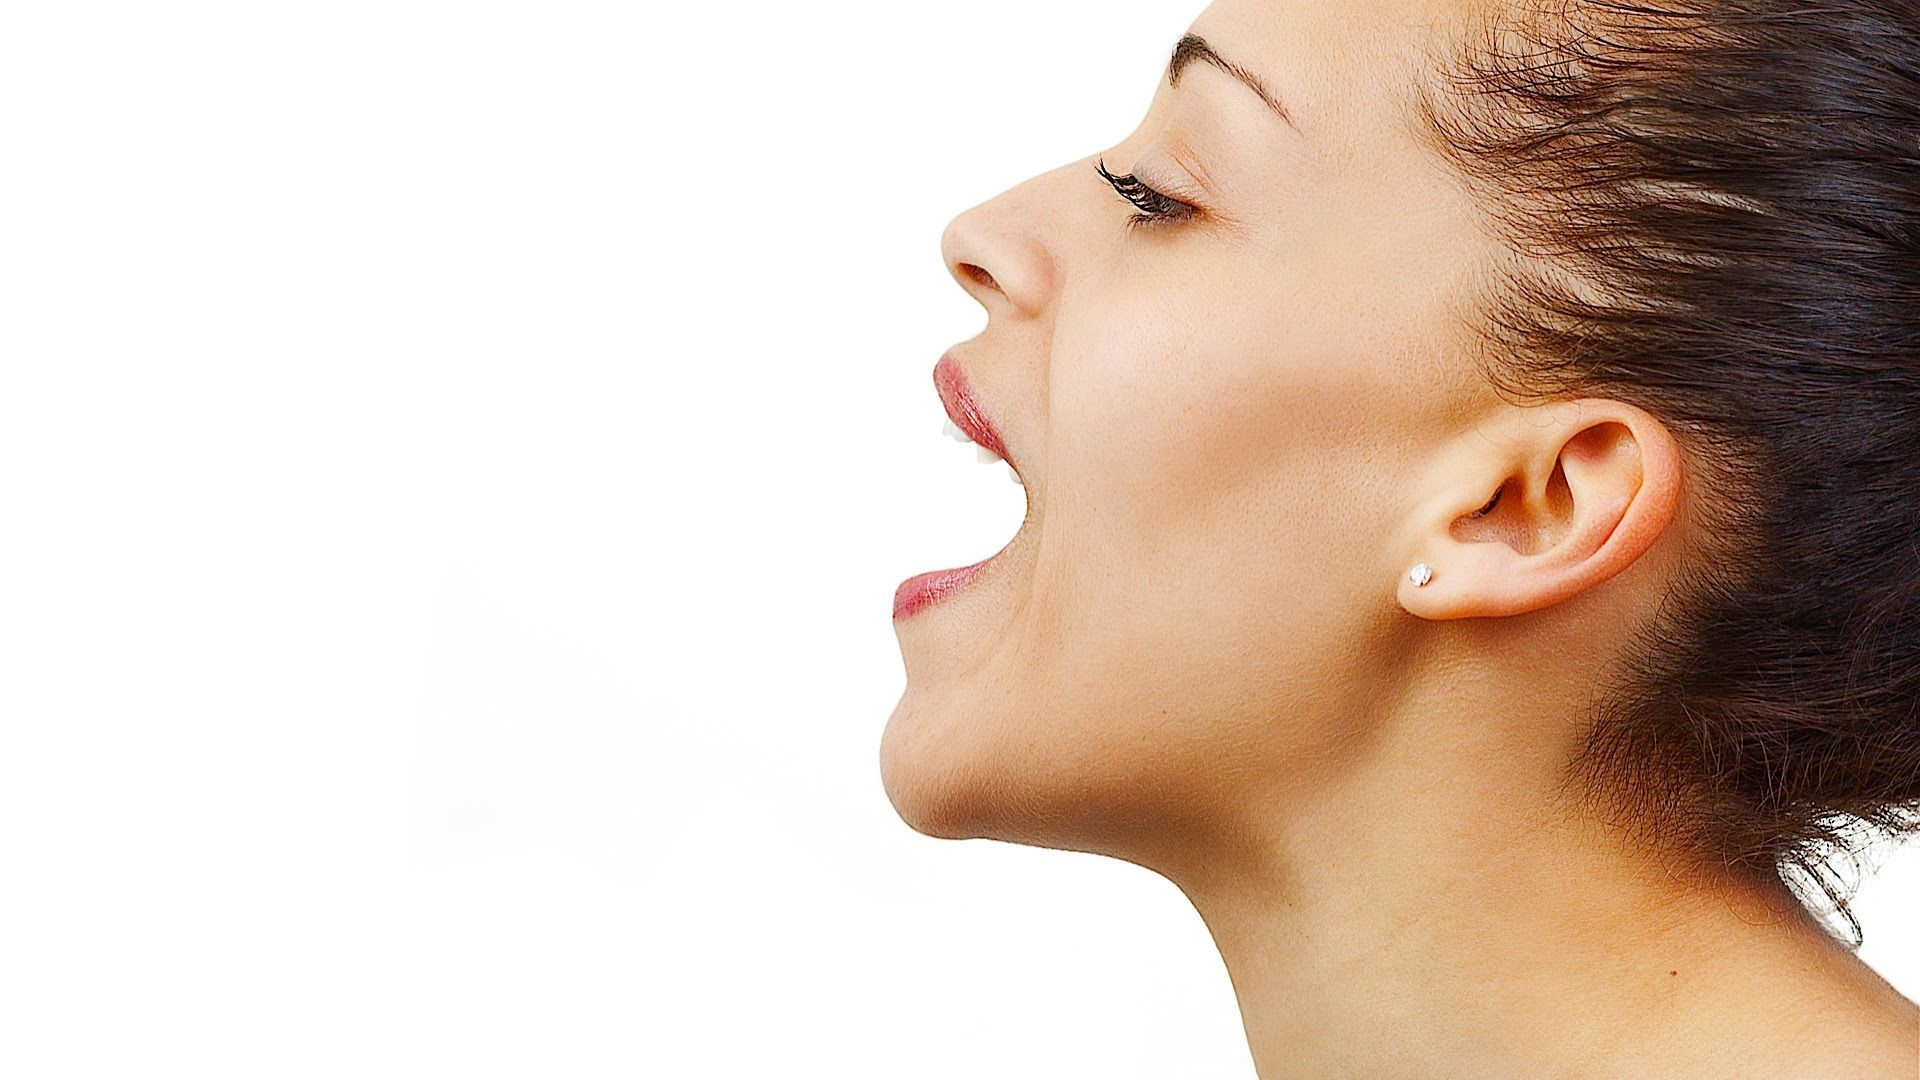 How to Sing a High Note Singing Lessons (With images